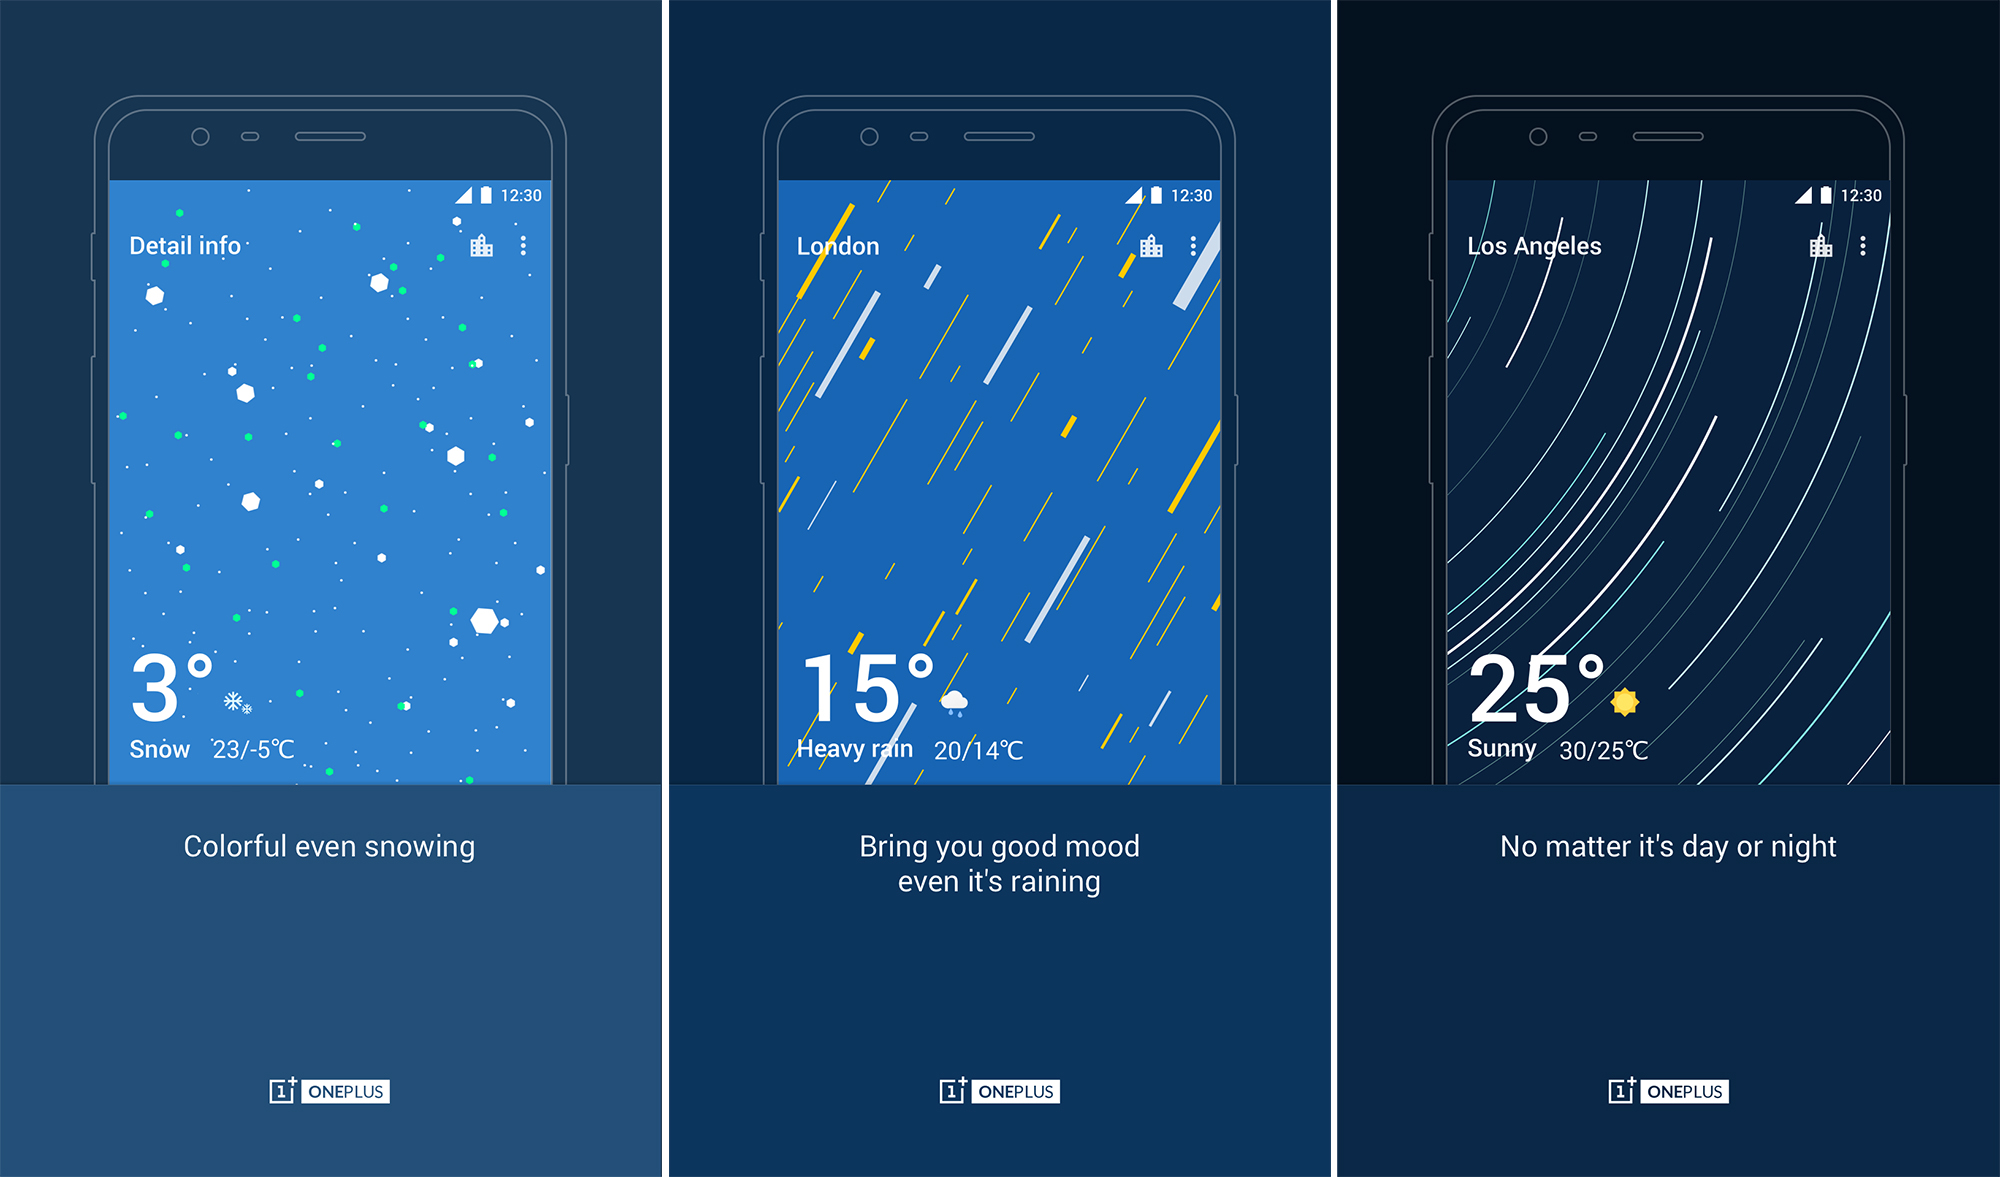 OnePlus adds its weather app to the Play Store